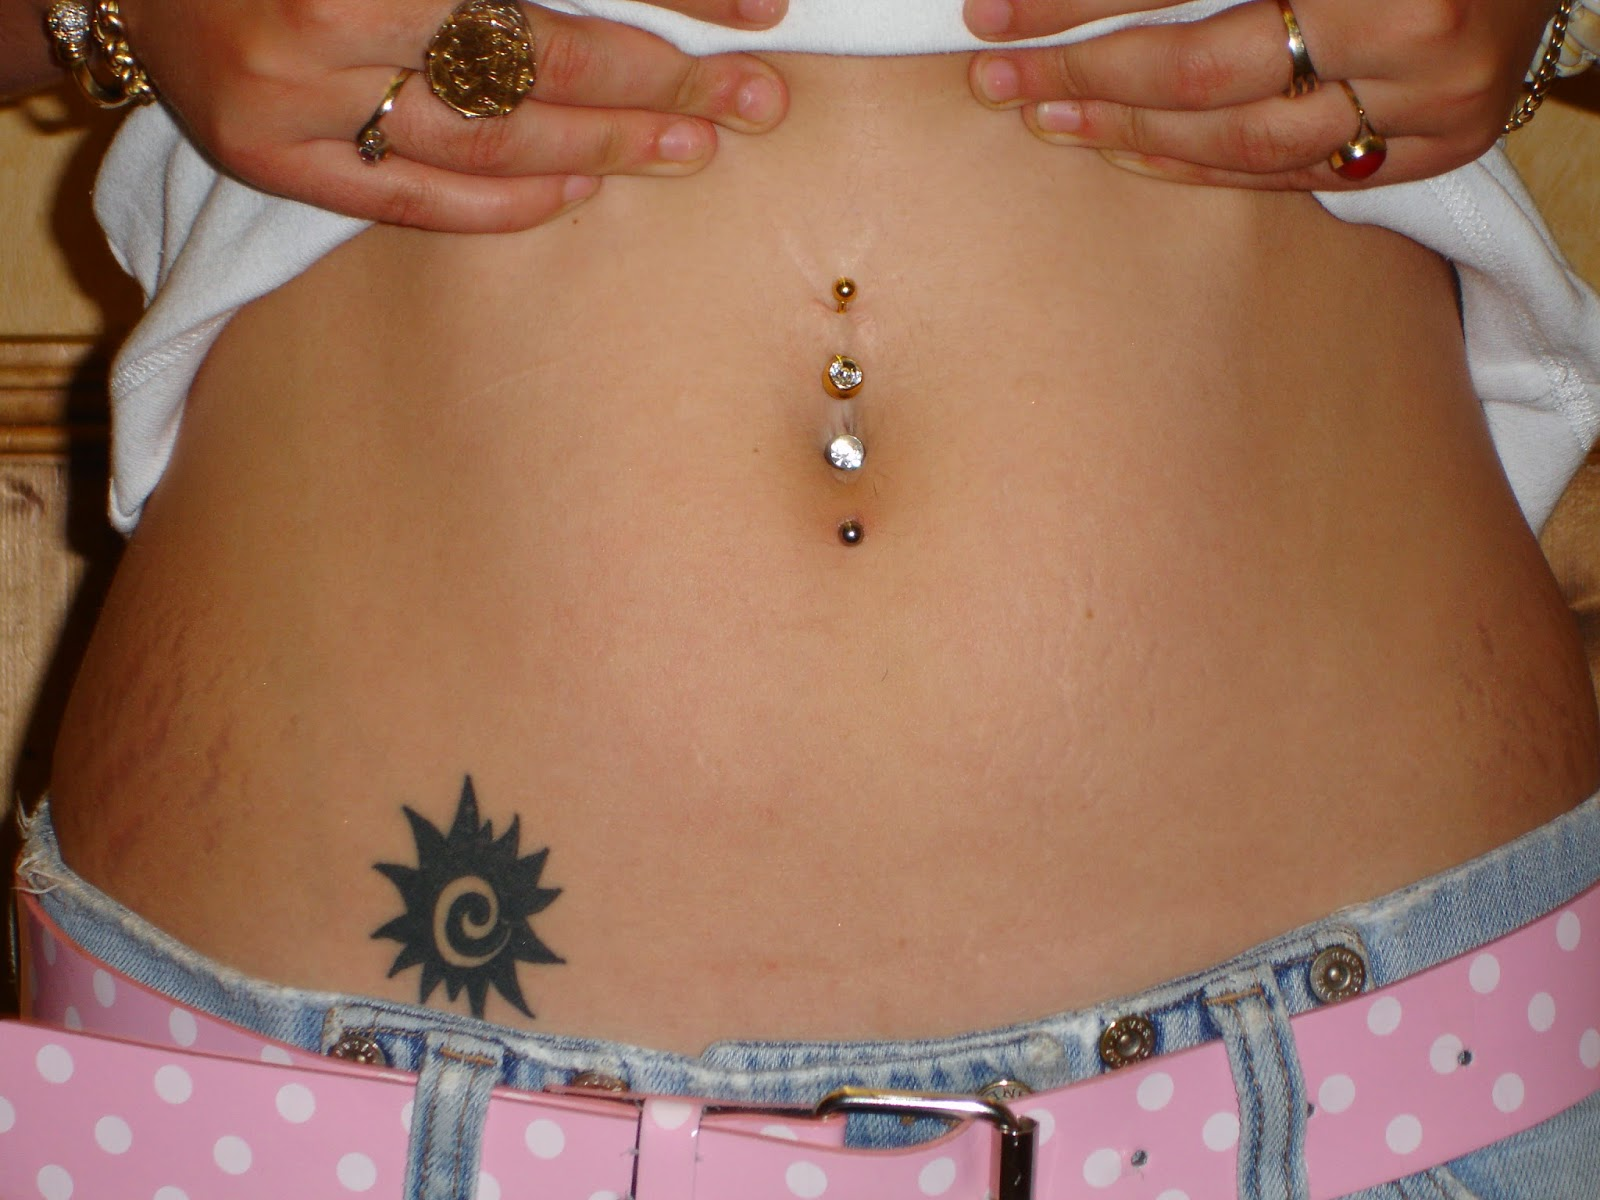 thesis on body piercing What's on your body the cause and effect of teenage tattooing the popularity of tattooing has increased dramatically, especially with teenagers tattooing has been a fad for centuries and teenagers are now starting to take on this so called form of art.